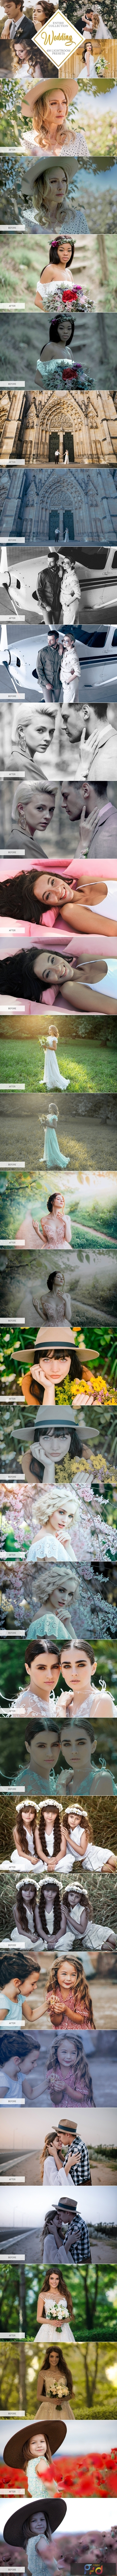 Entire Wedding Collection 4295531 1